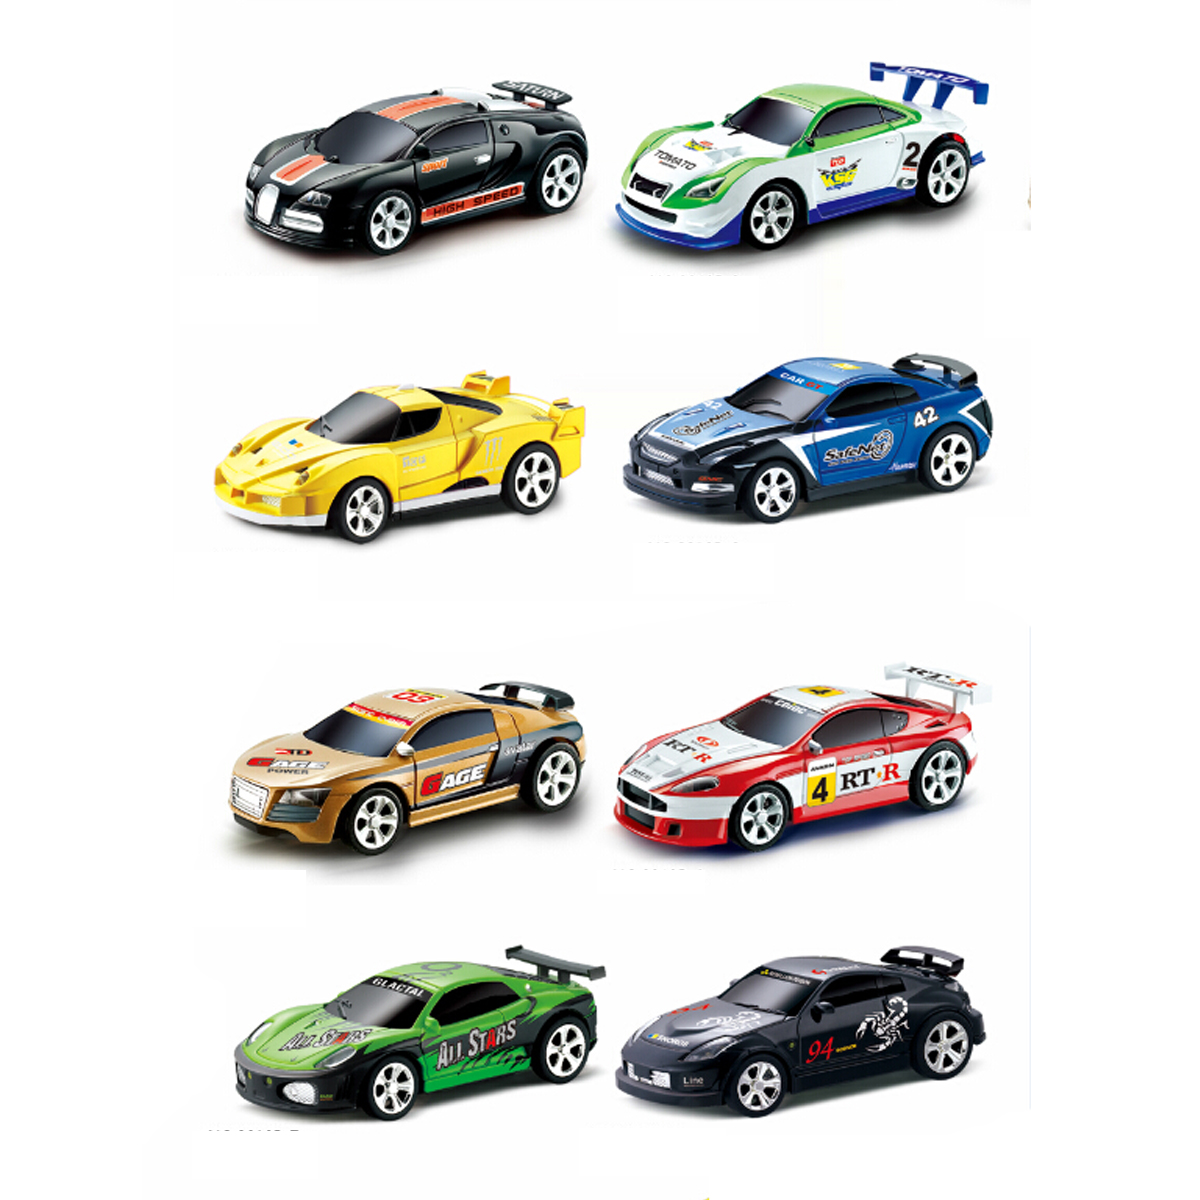 mini rc radio remote control micro racing model coke can car game toy kid gift black intl. Black Bedroom Furniture Sets. Home Design Ideas